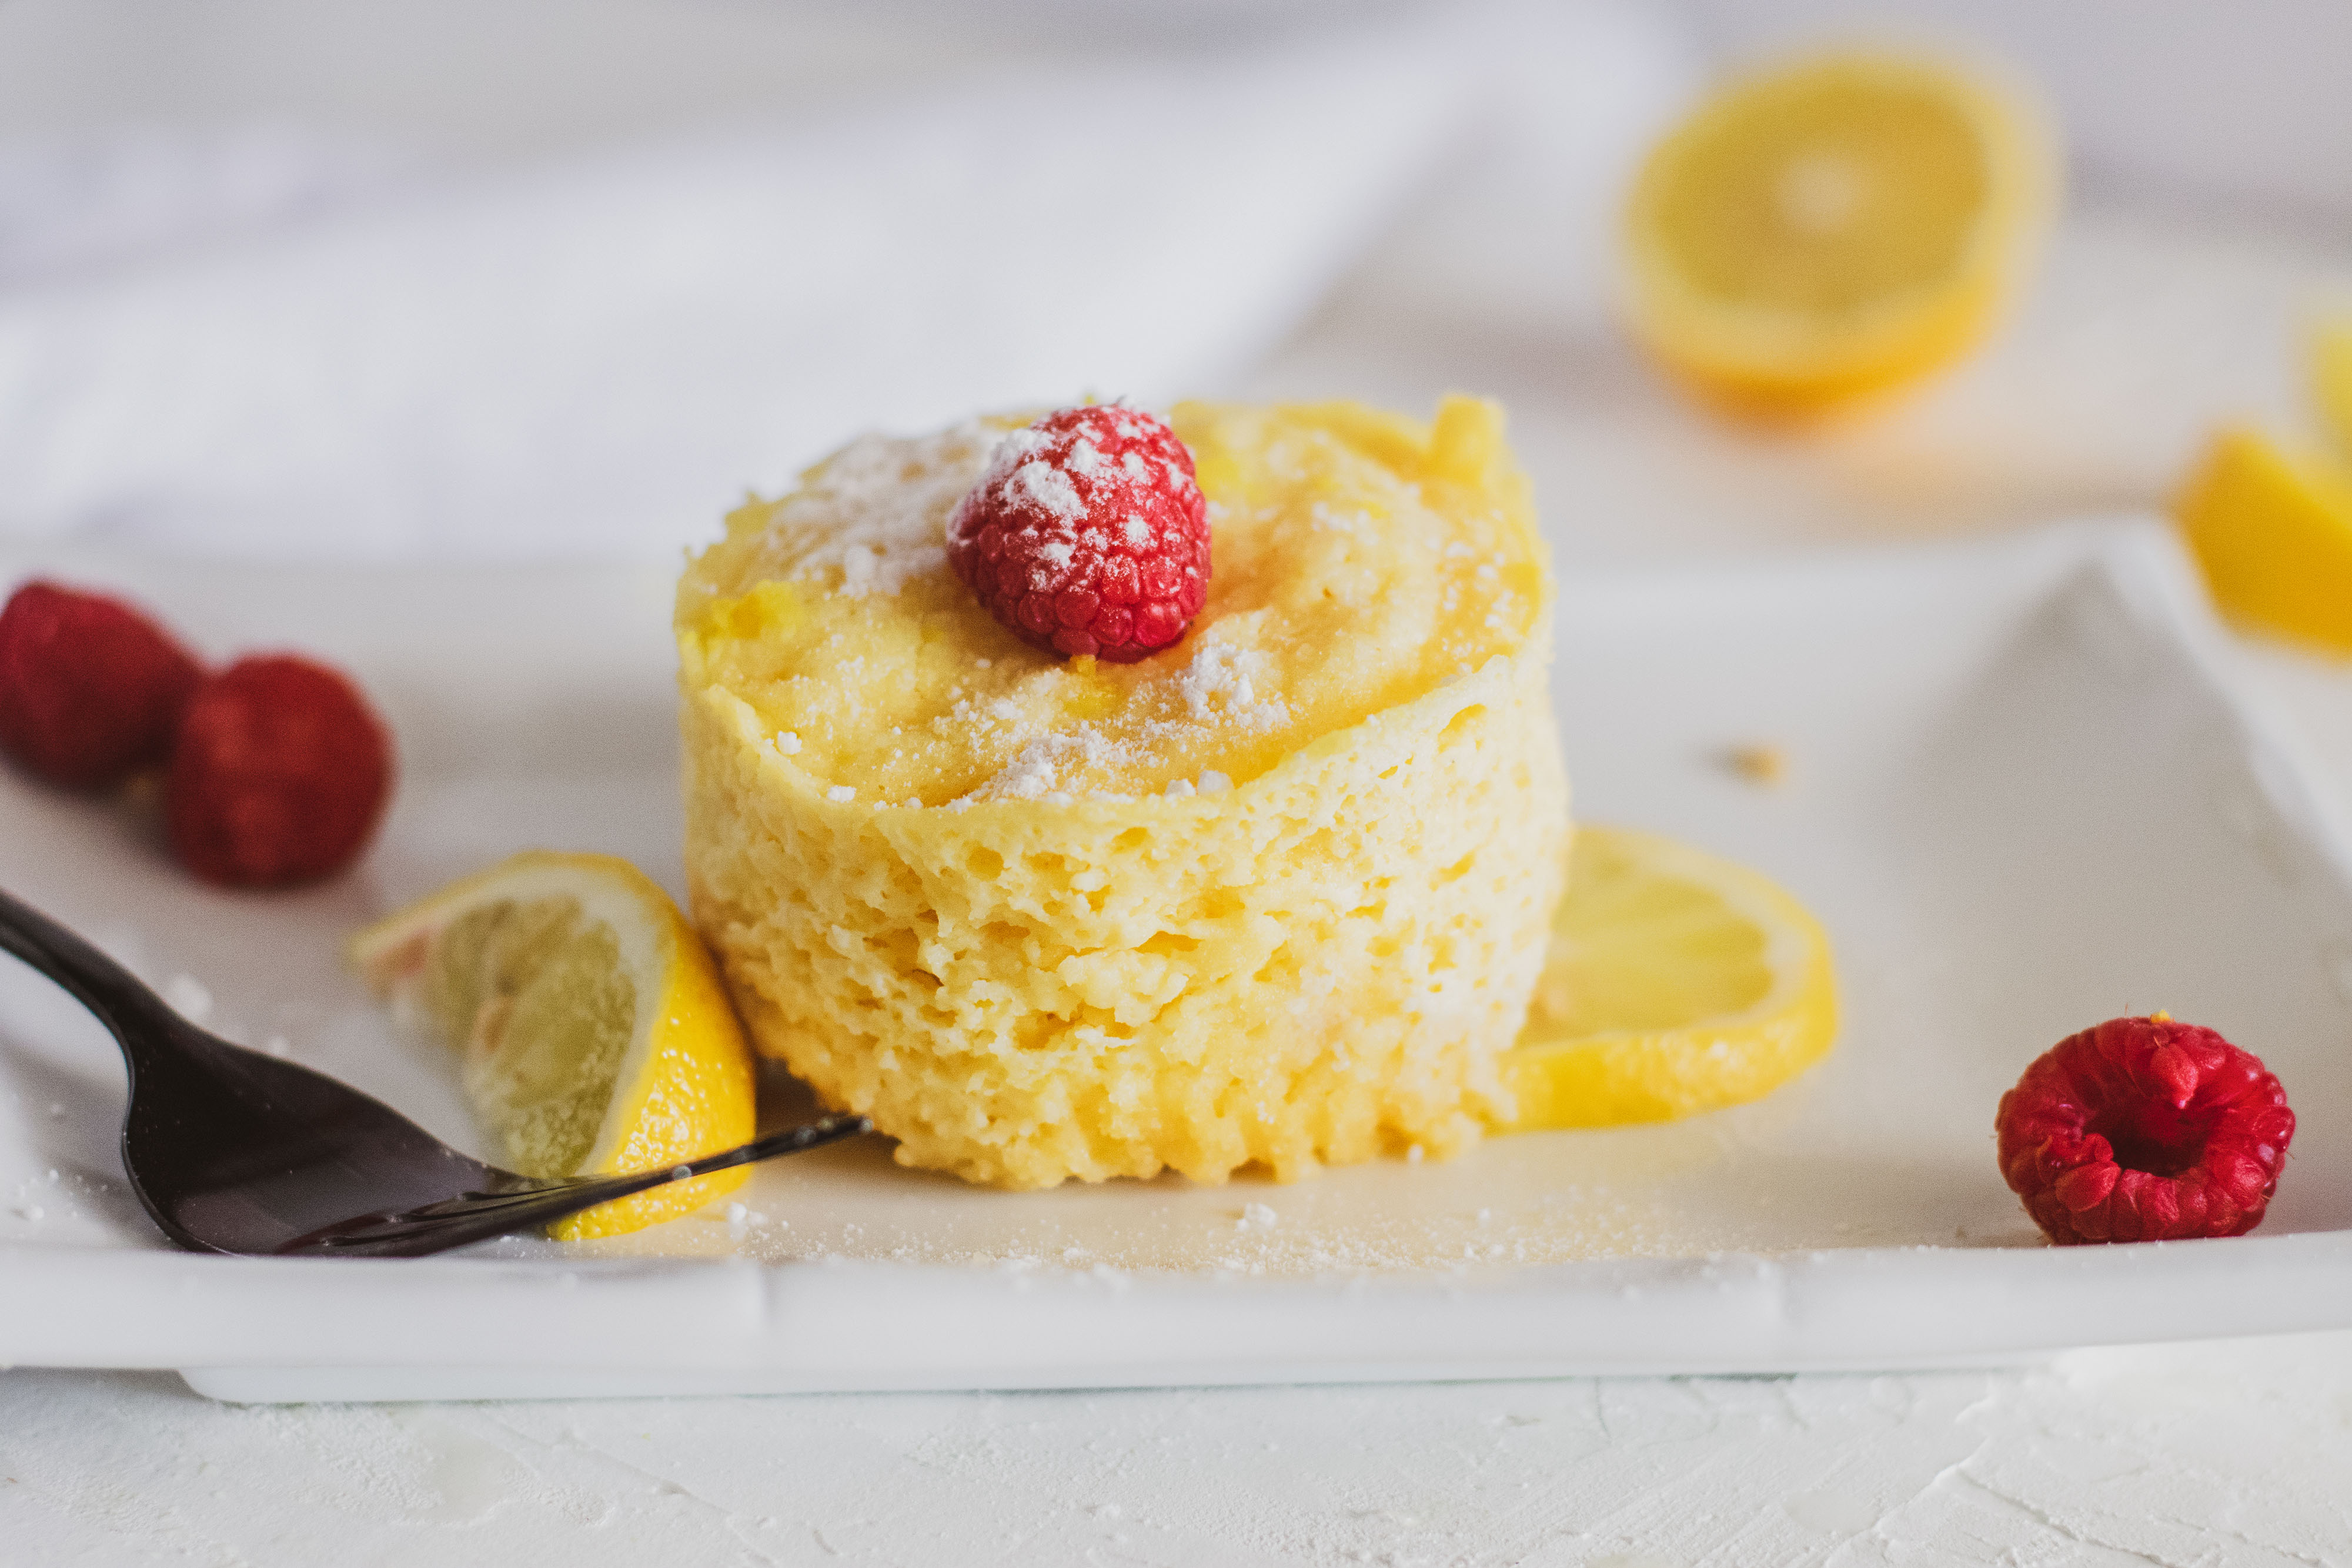 Low carb lemon mug cakes on a white plate with raspberries and lemon slices on a white surface.